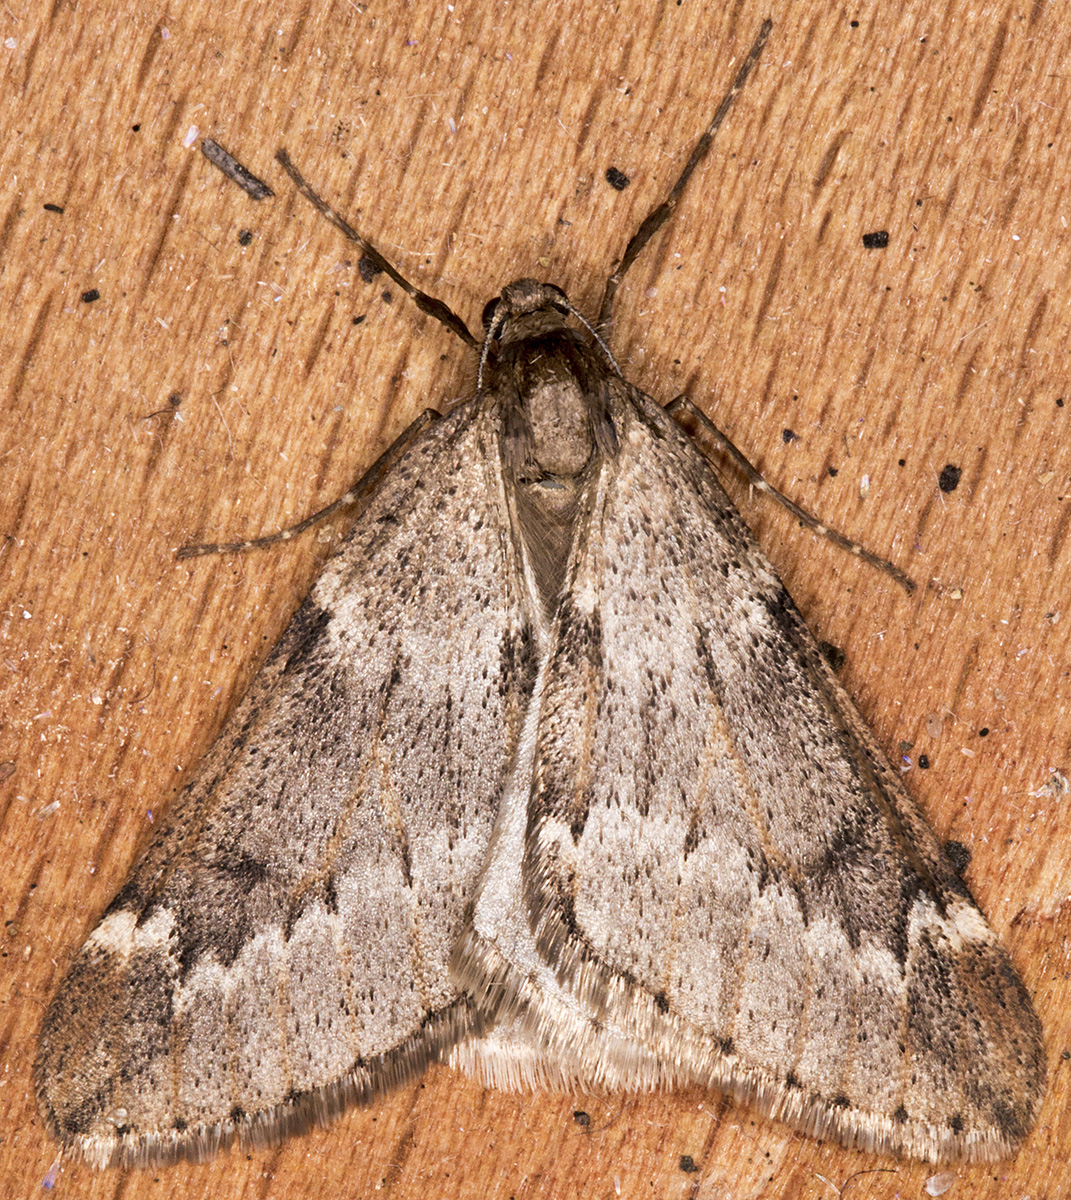 March Moth, Alsophila aescularia.   In my garden light trap on 24 March 2015